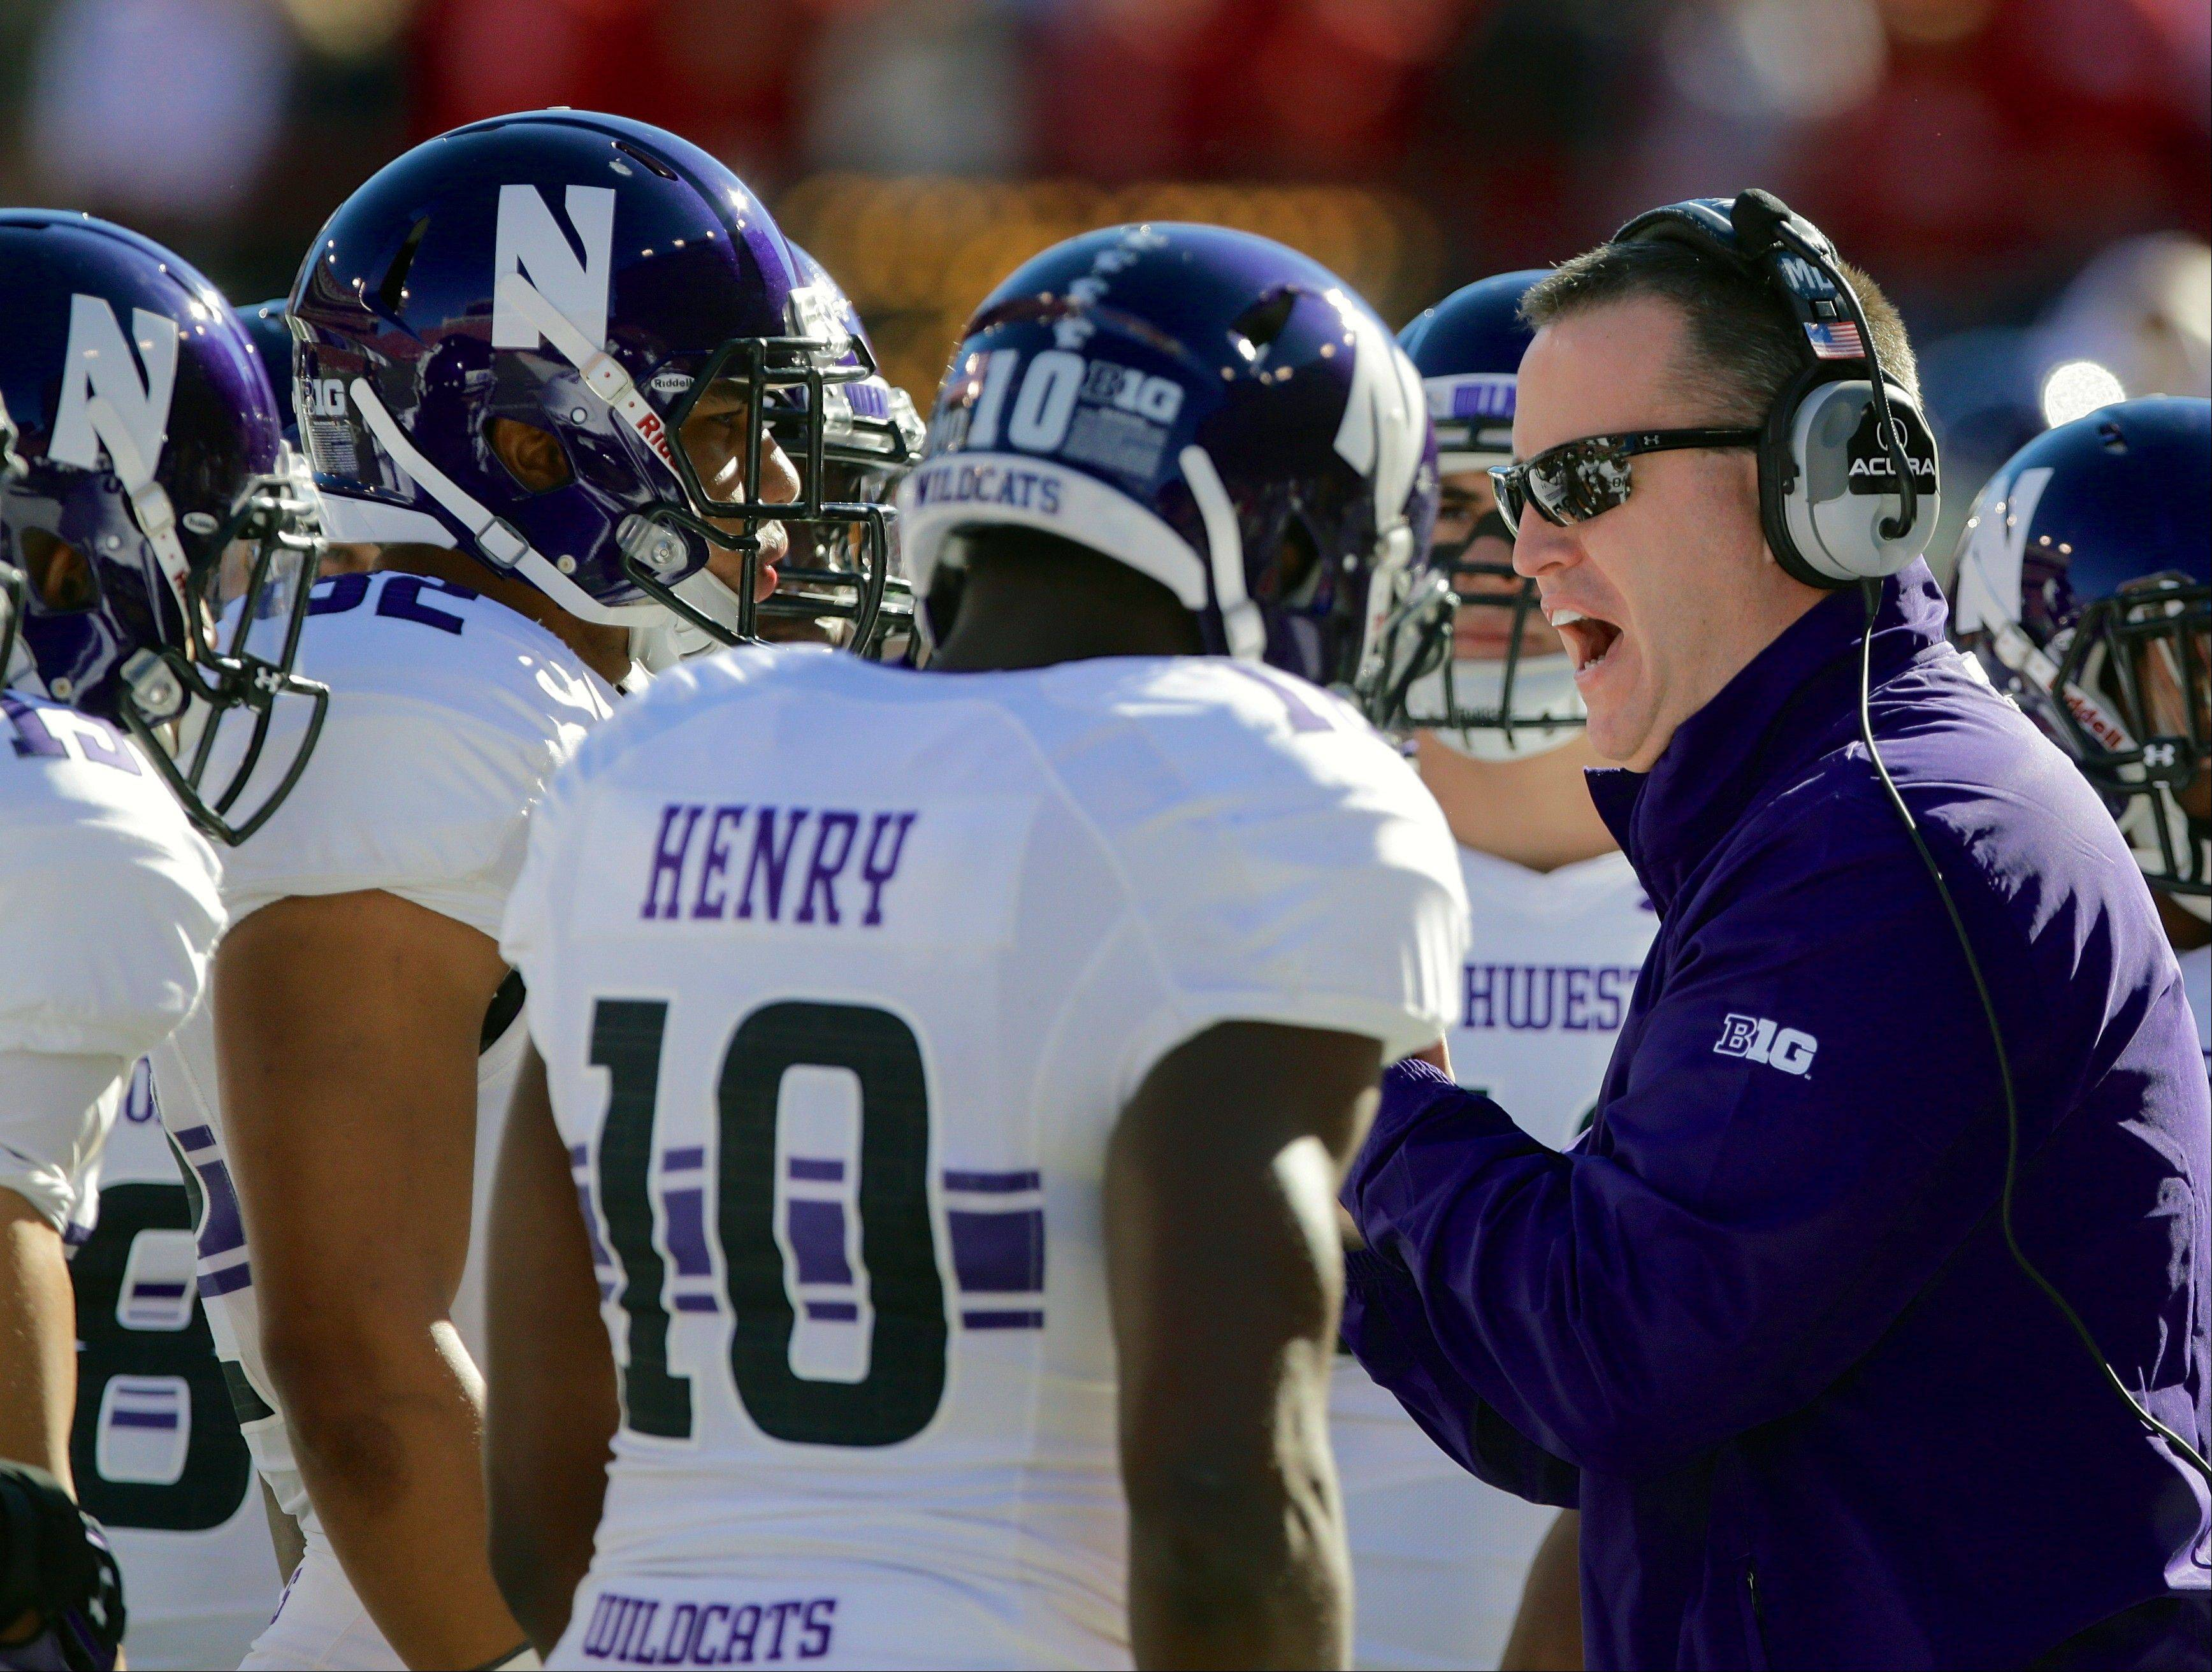 After a great start to the season, Northwestern head coach Pat Fitzgerald now has to find a way to halt a five-game losing streak. Up next is Michigan on Nov. 16.